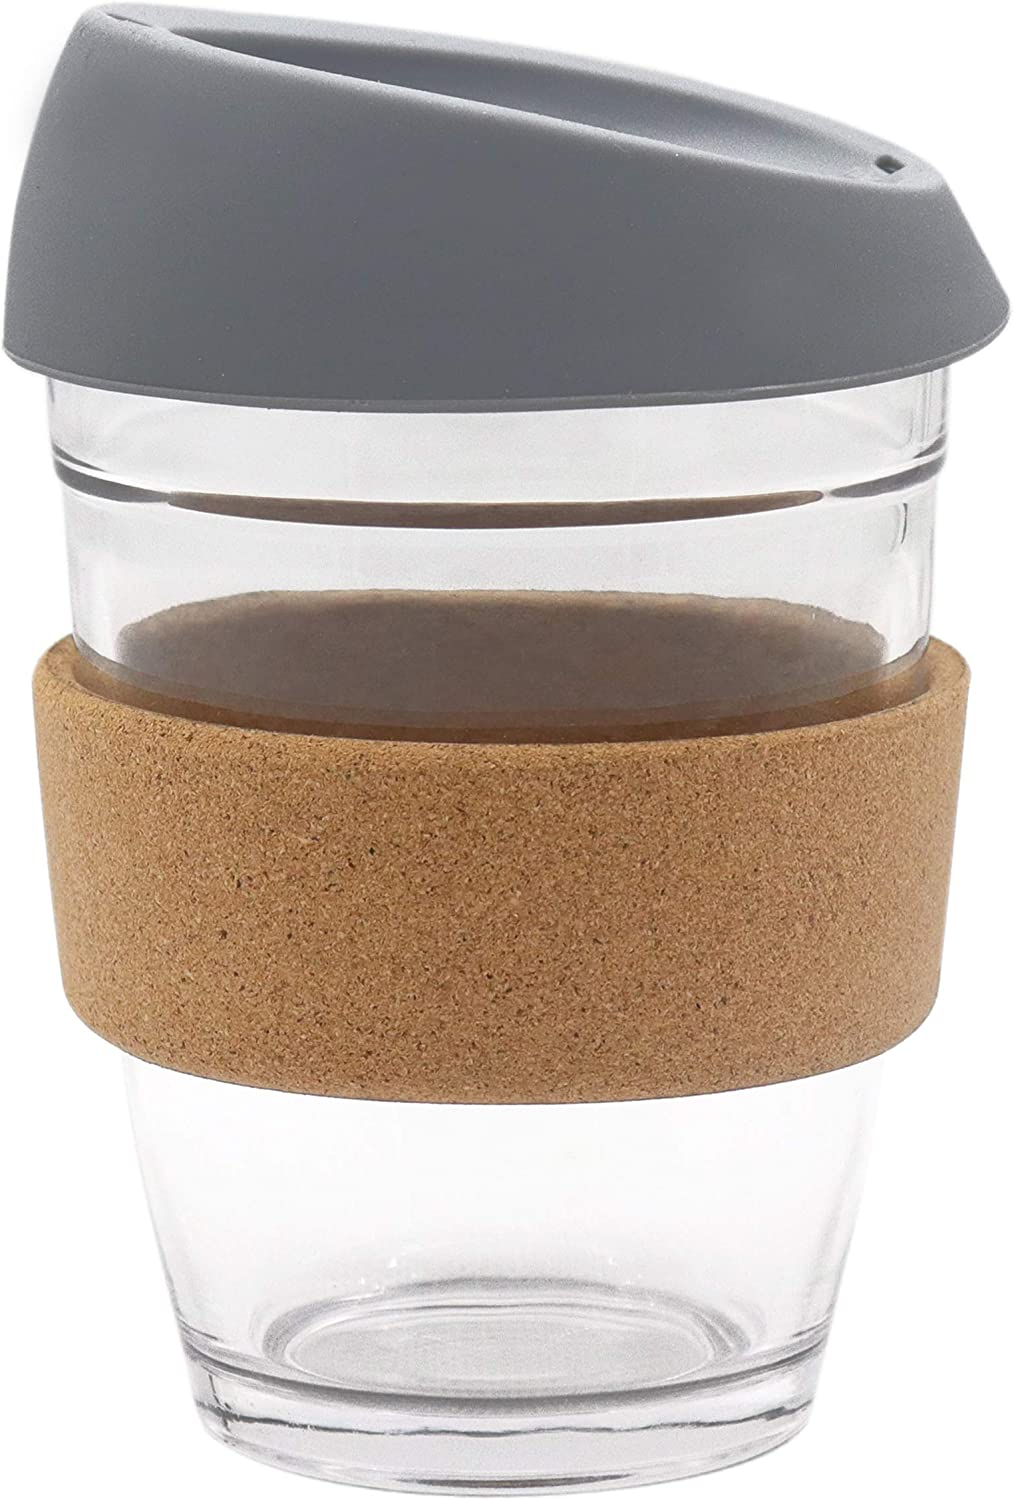 L'ifeager Reusable Coffee Travel Cup Toughened Glass Cup&Eco Friendly Cork sleeve Dishwasher and Microwave Safe BPA Free | 12oz | Christmas Birthday present (Grey)